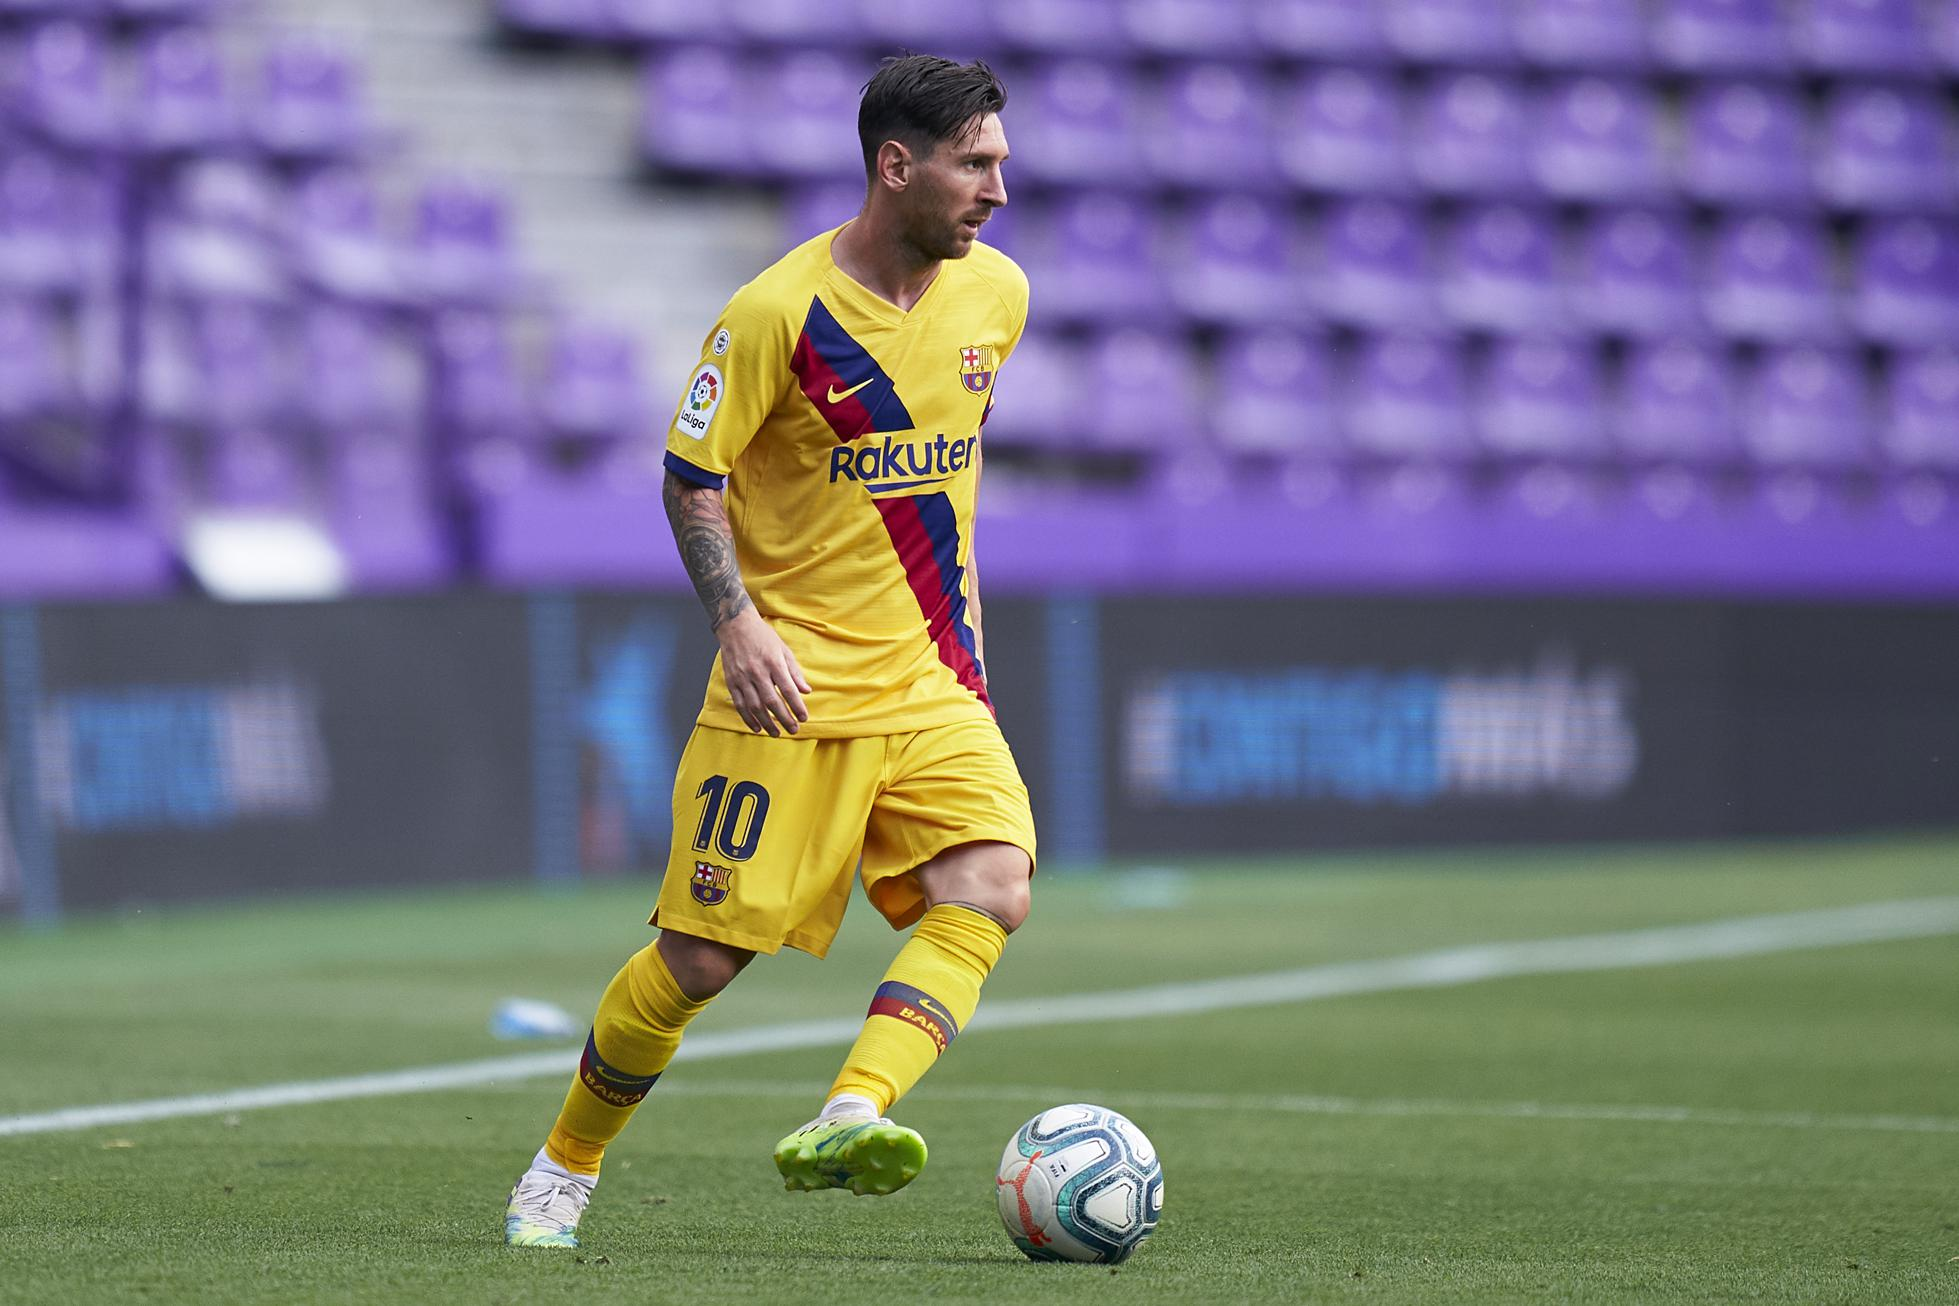 Lionel Messi commands the ball.